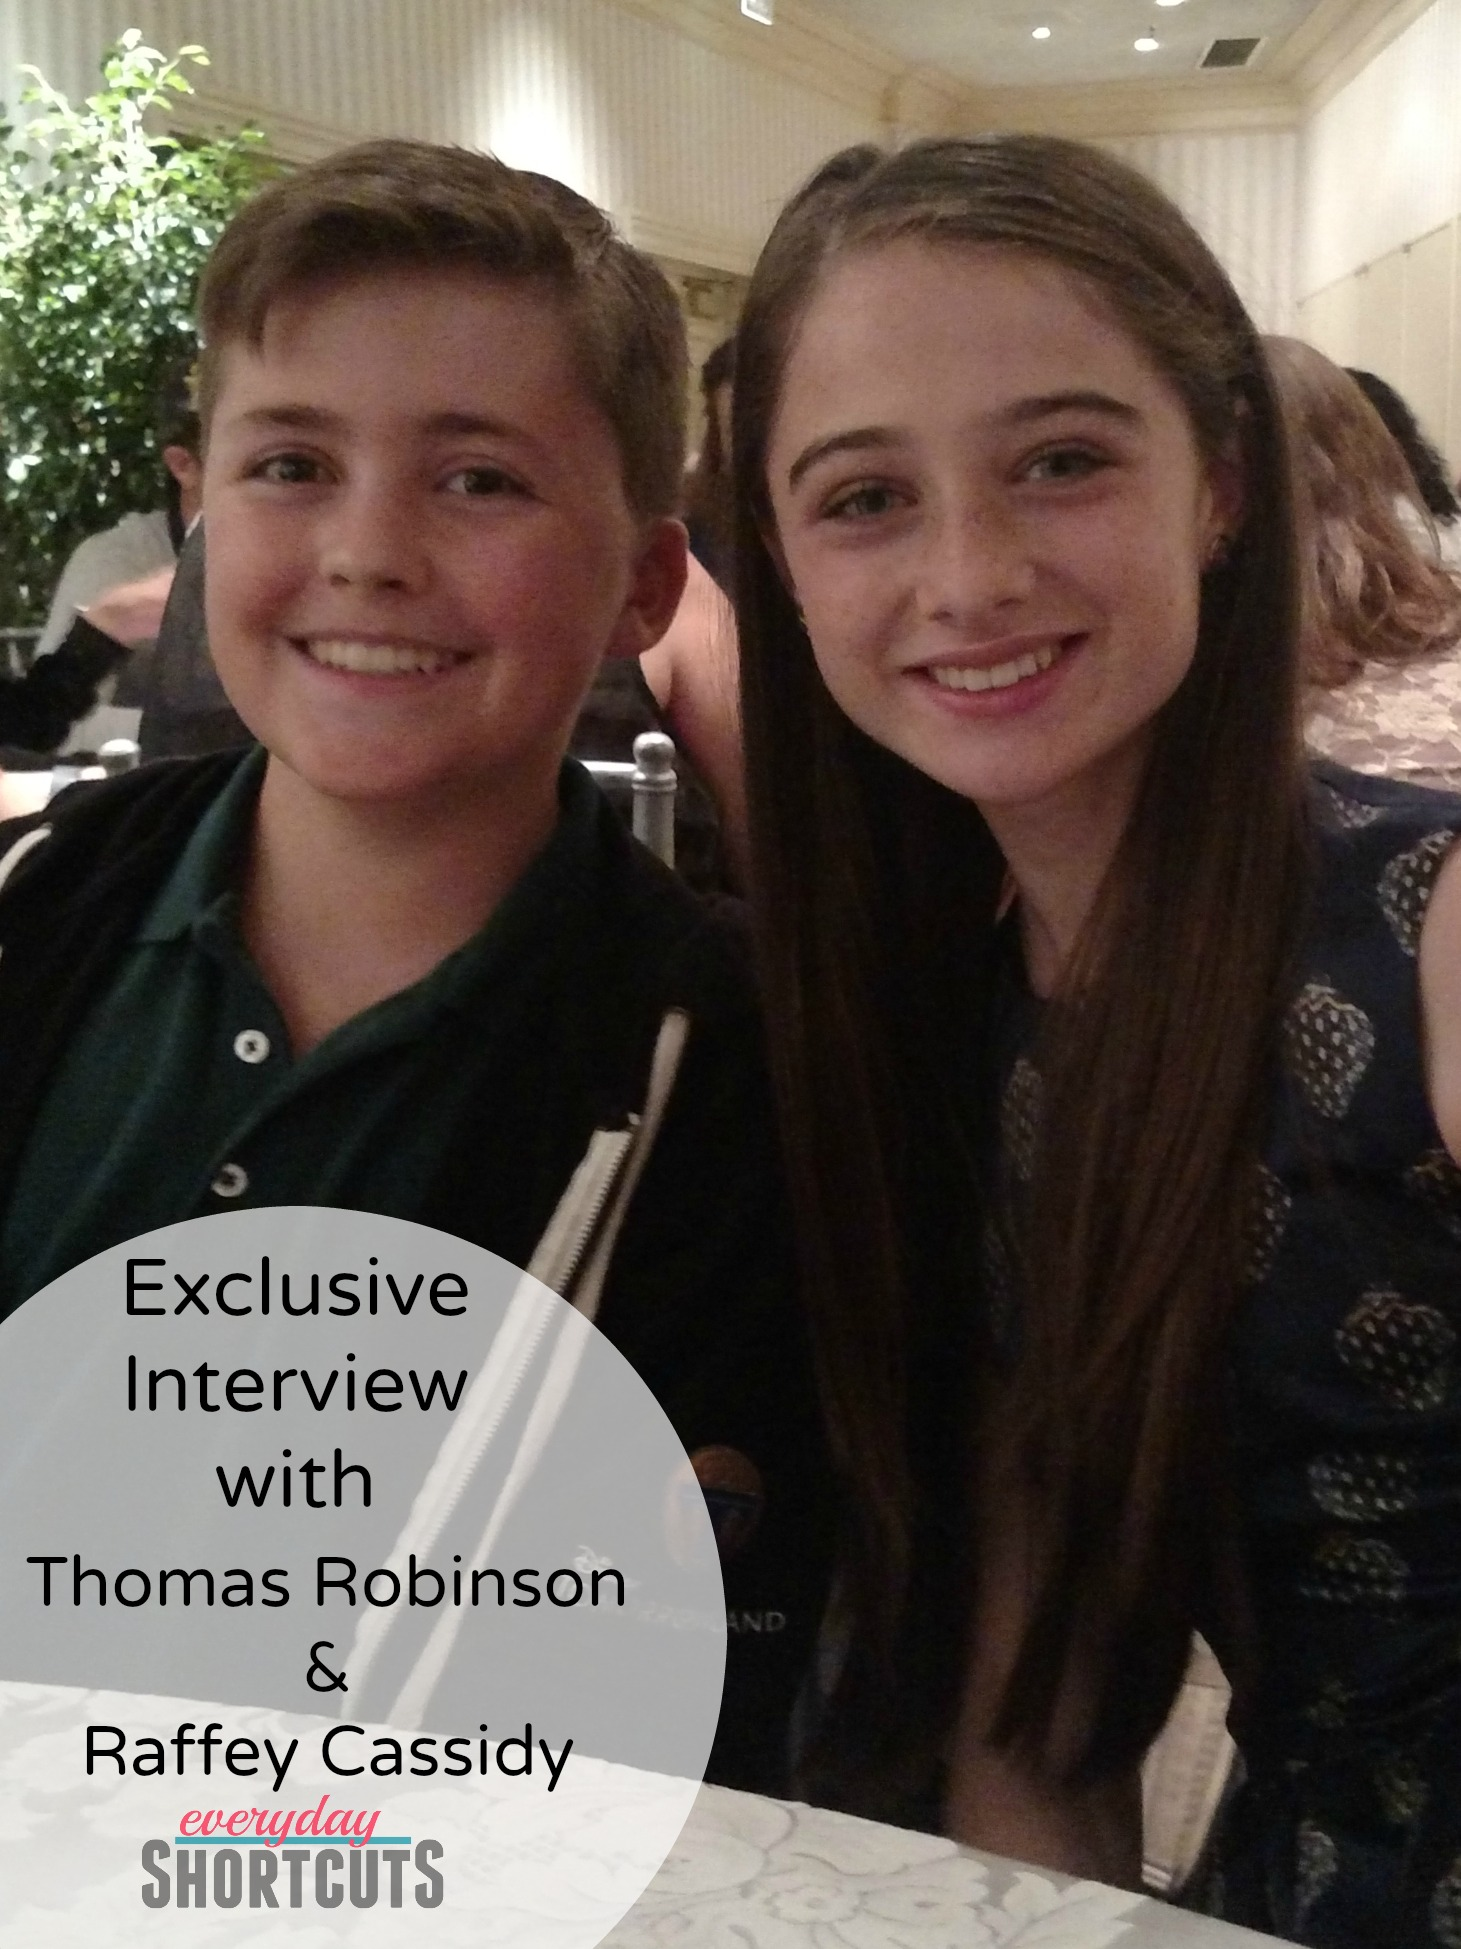 exclusive interview with Thomas Robinson & Raffey Cassidy